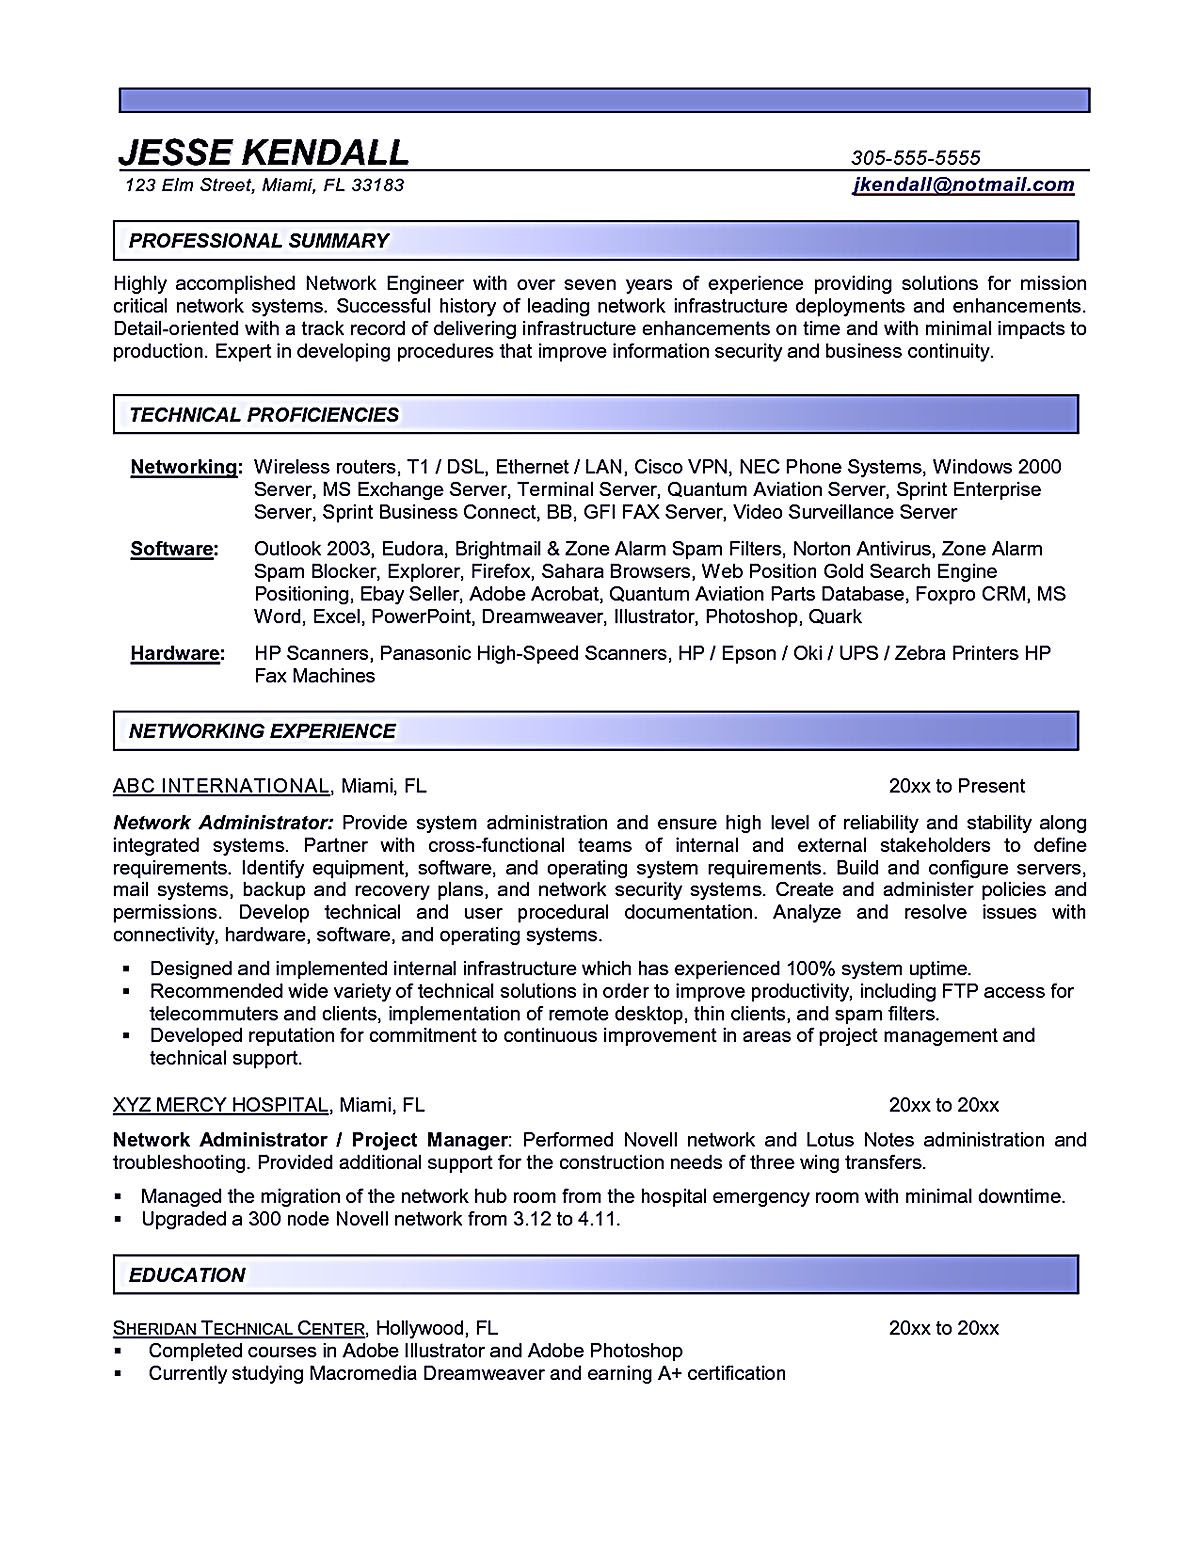 Account Receivable Resume Cool Account Receivable Resume Shows Both Technical And Interpersonal .